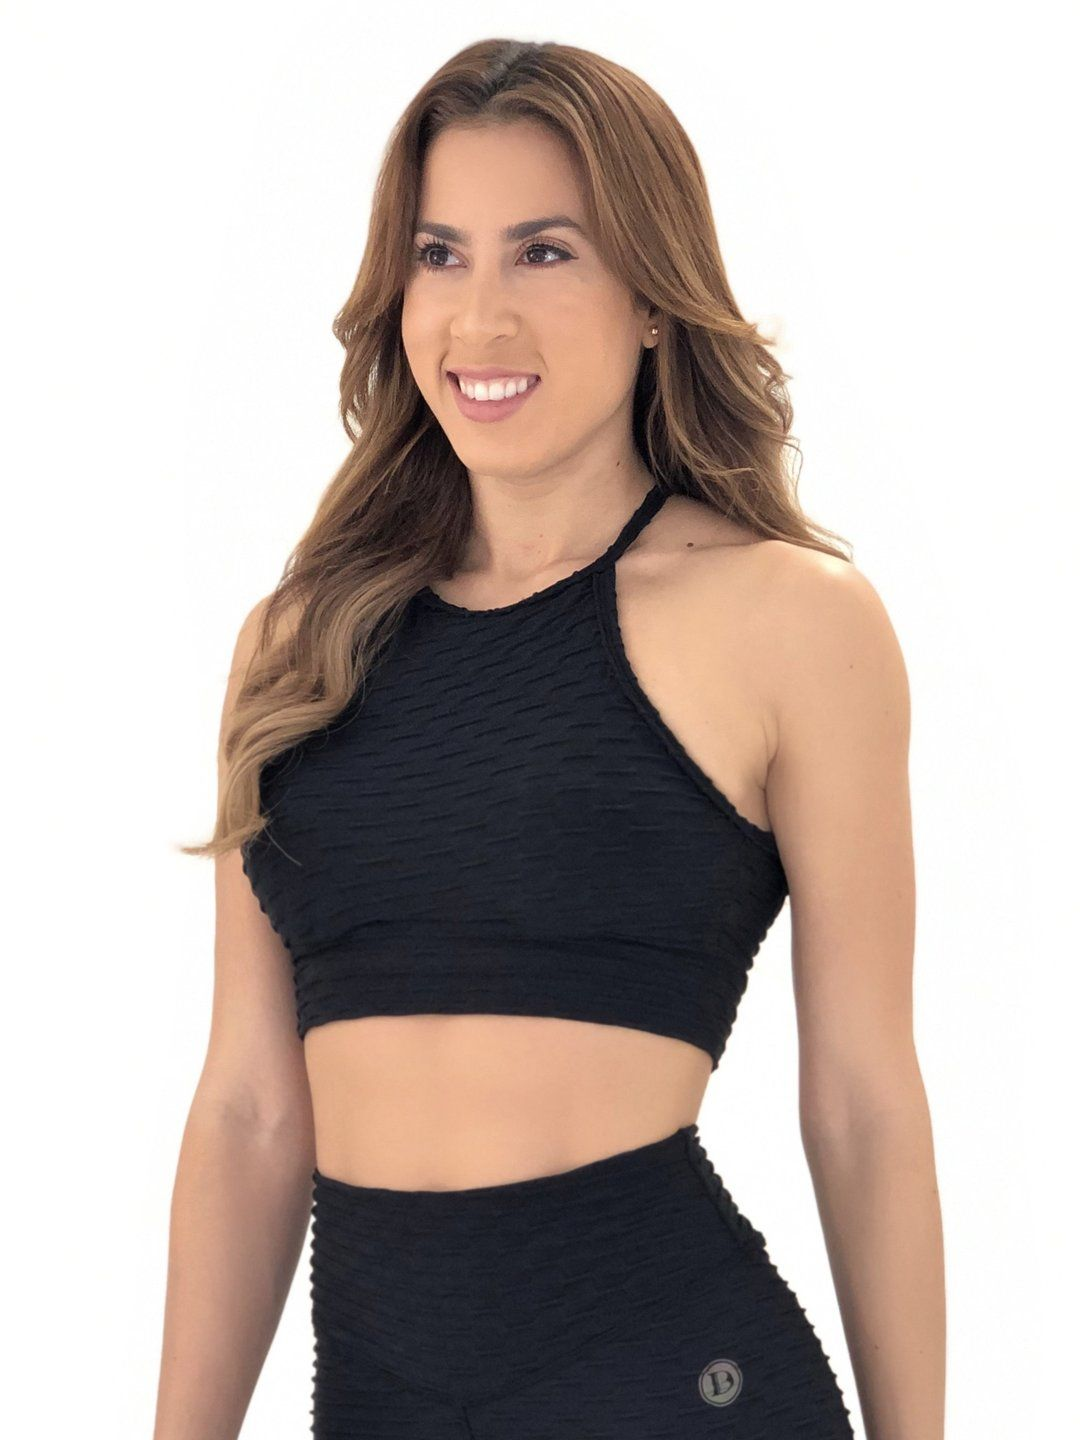 Exposed Sports Bra (Black Glam Texture) in 2020 Sports